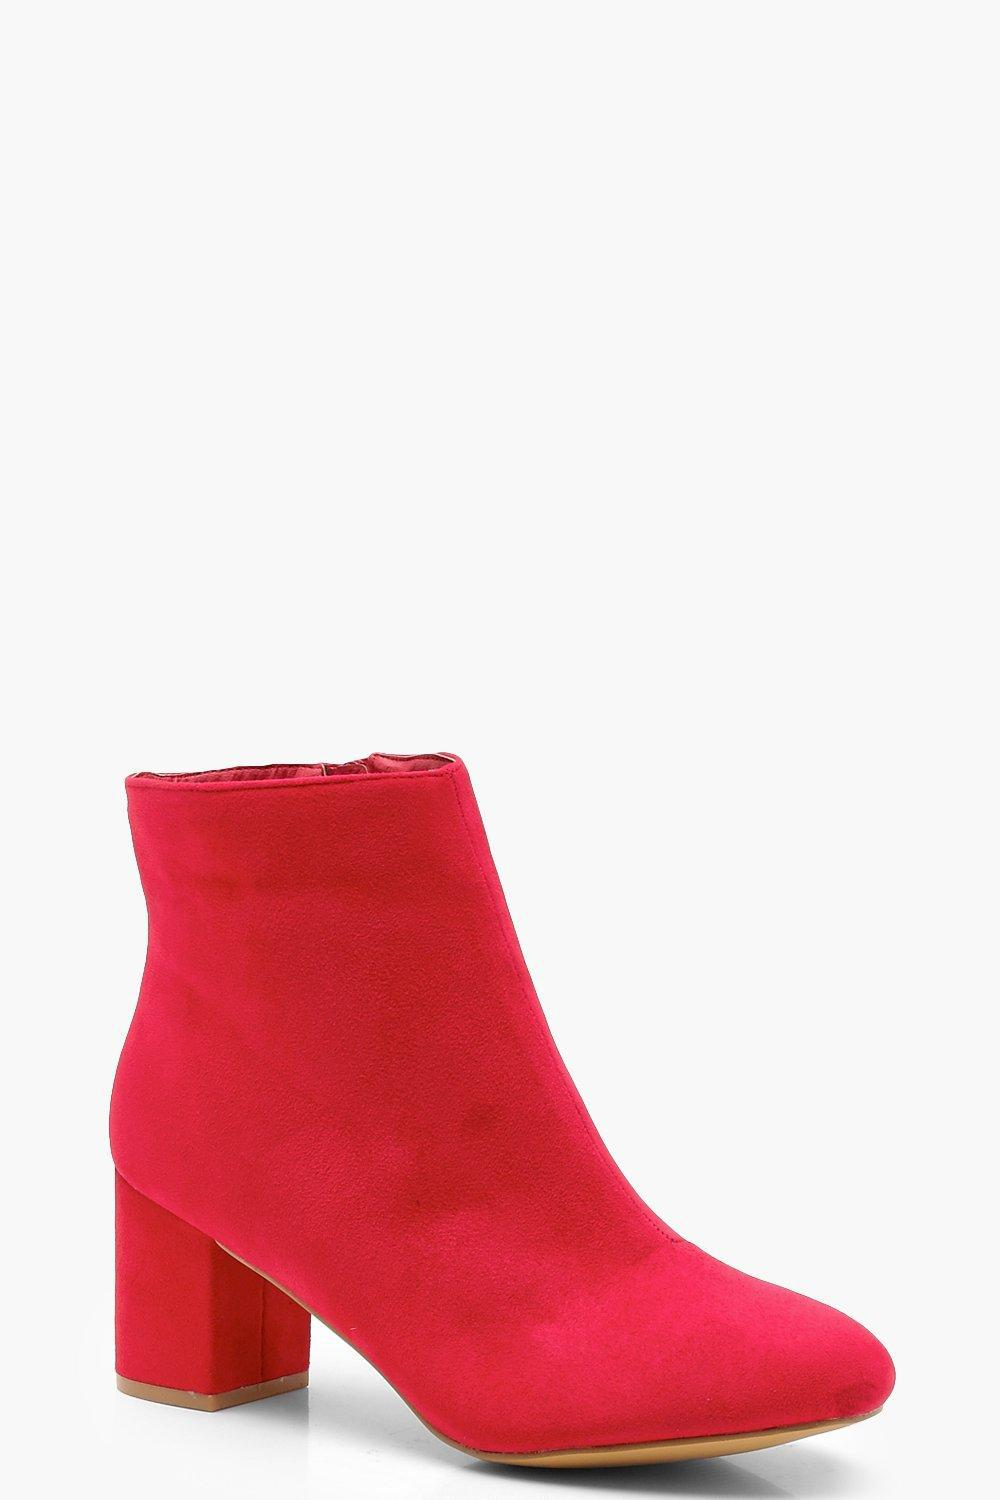 c9c781a3e995 Lyst - Boohoo Wide Fit Block Heel Shoe Boots in Red